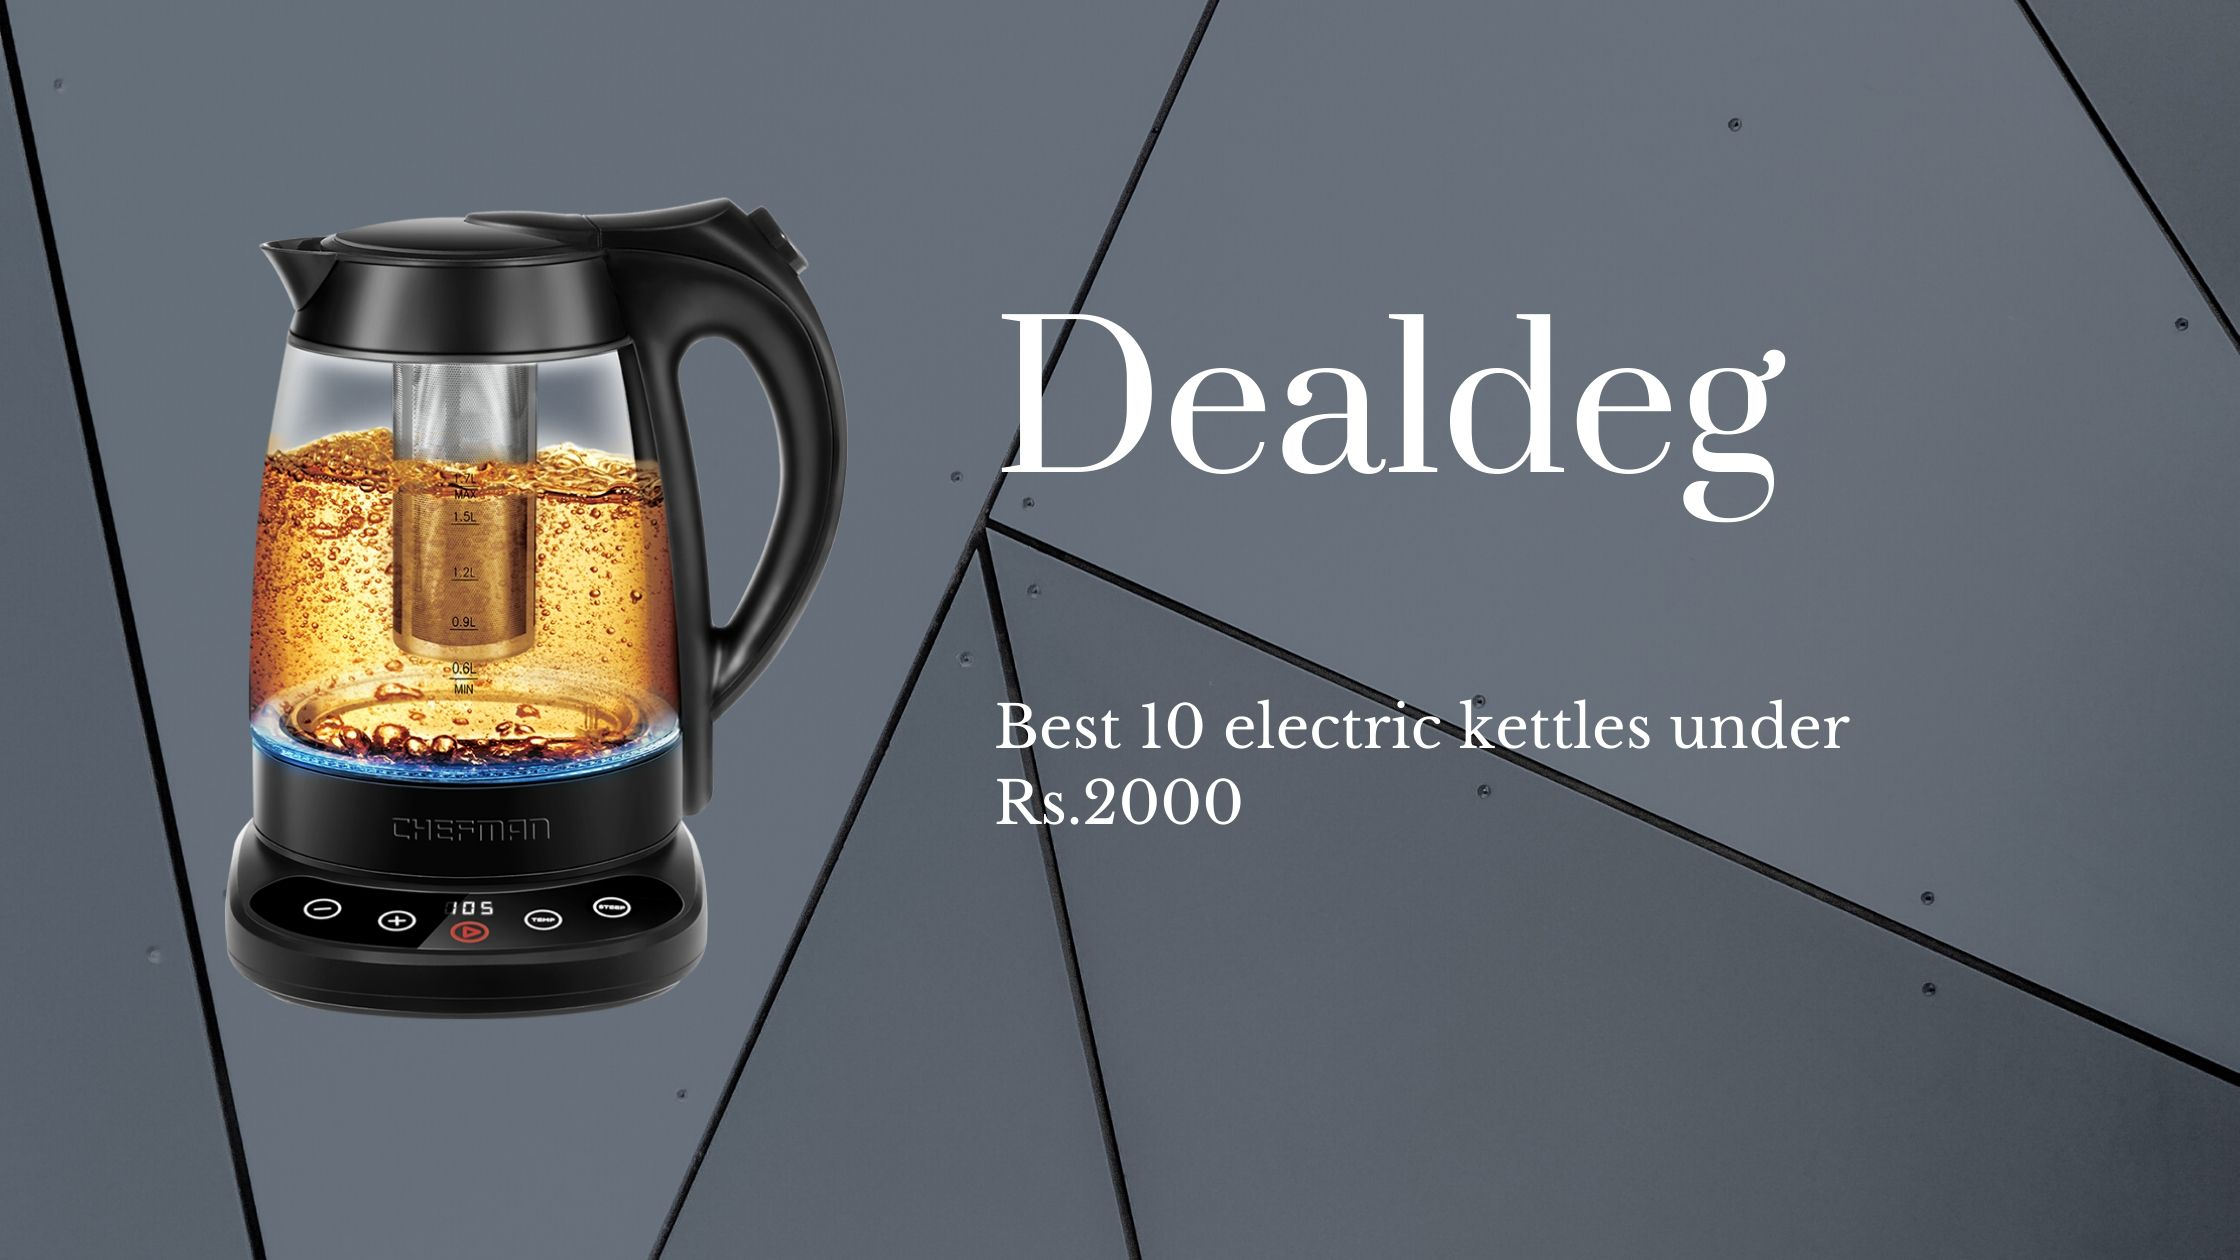 Best 10 electric kettles under Rs.2000